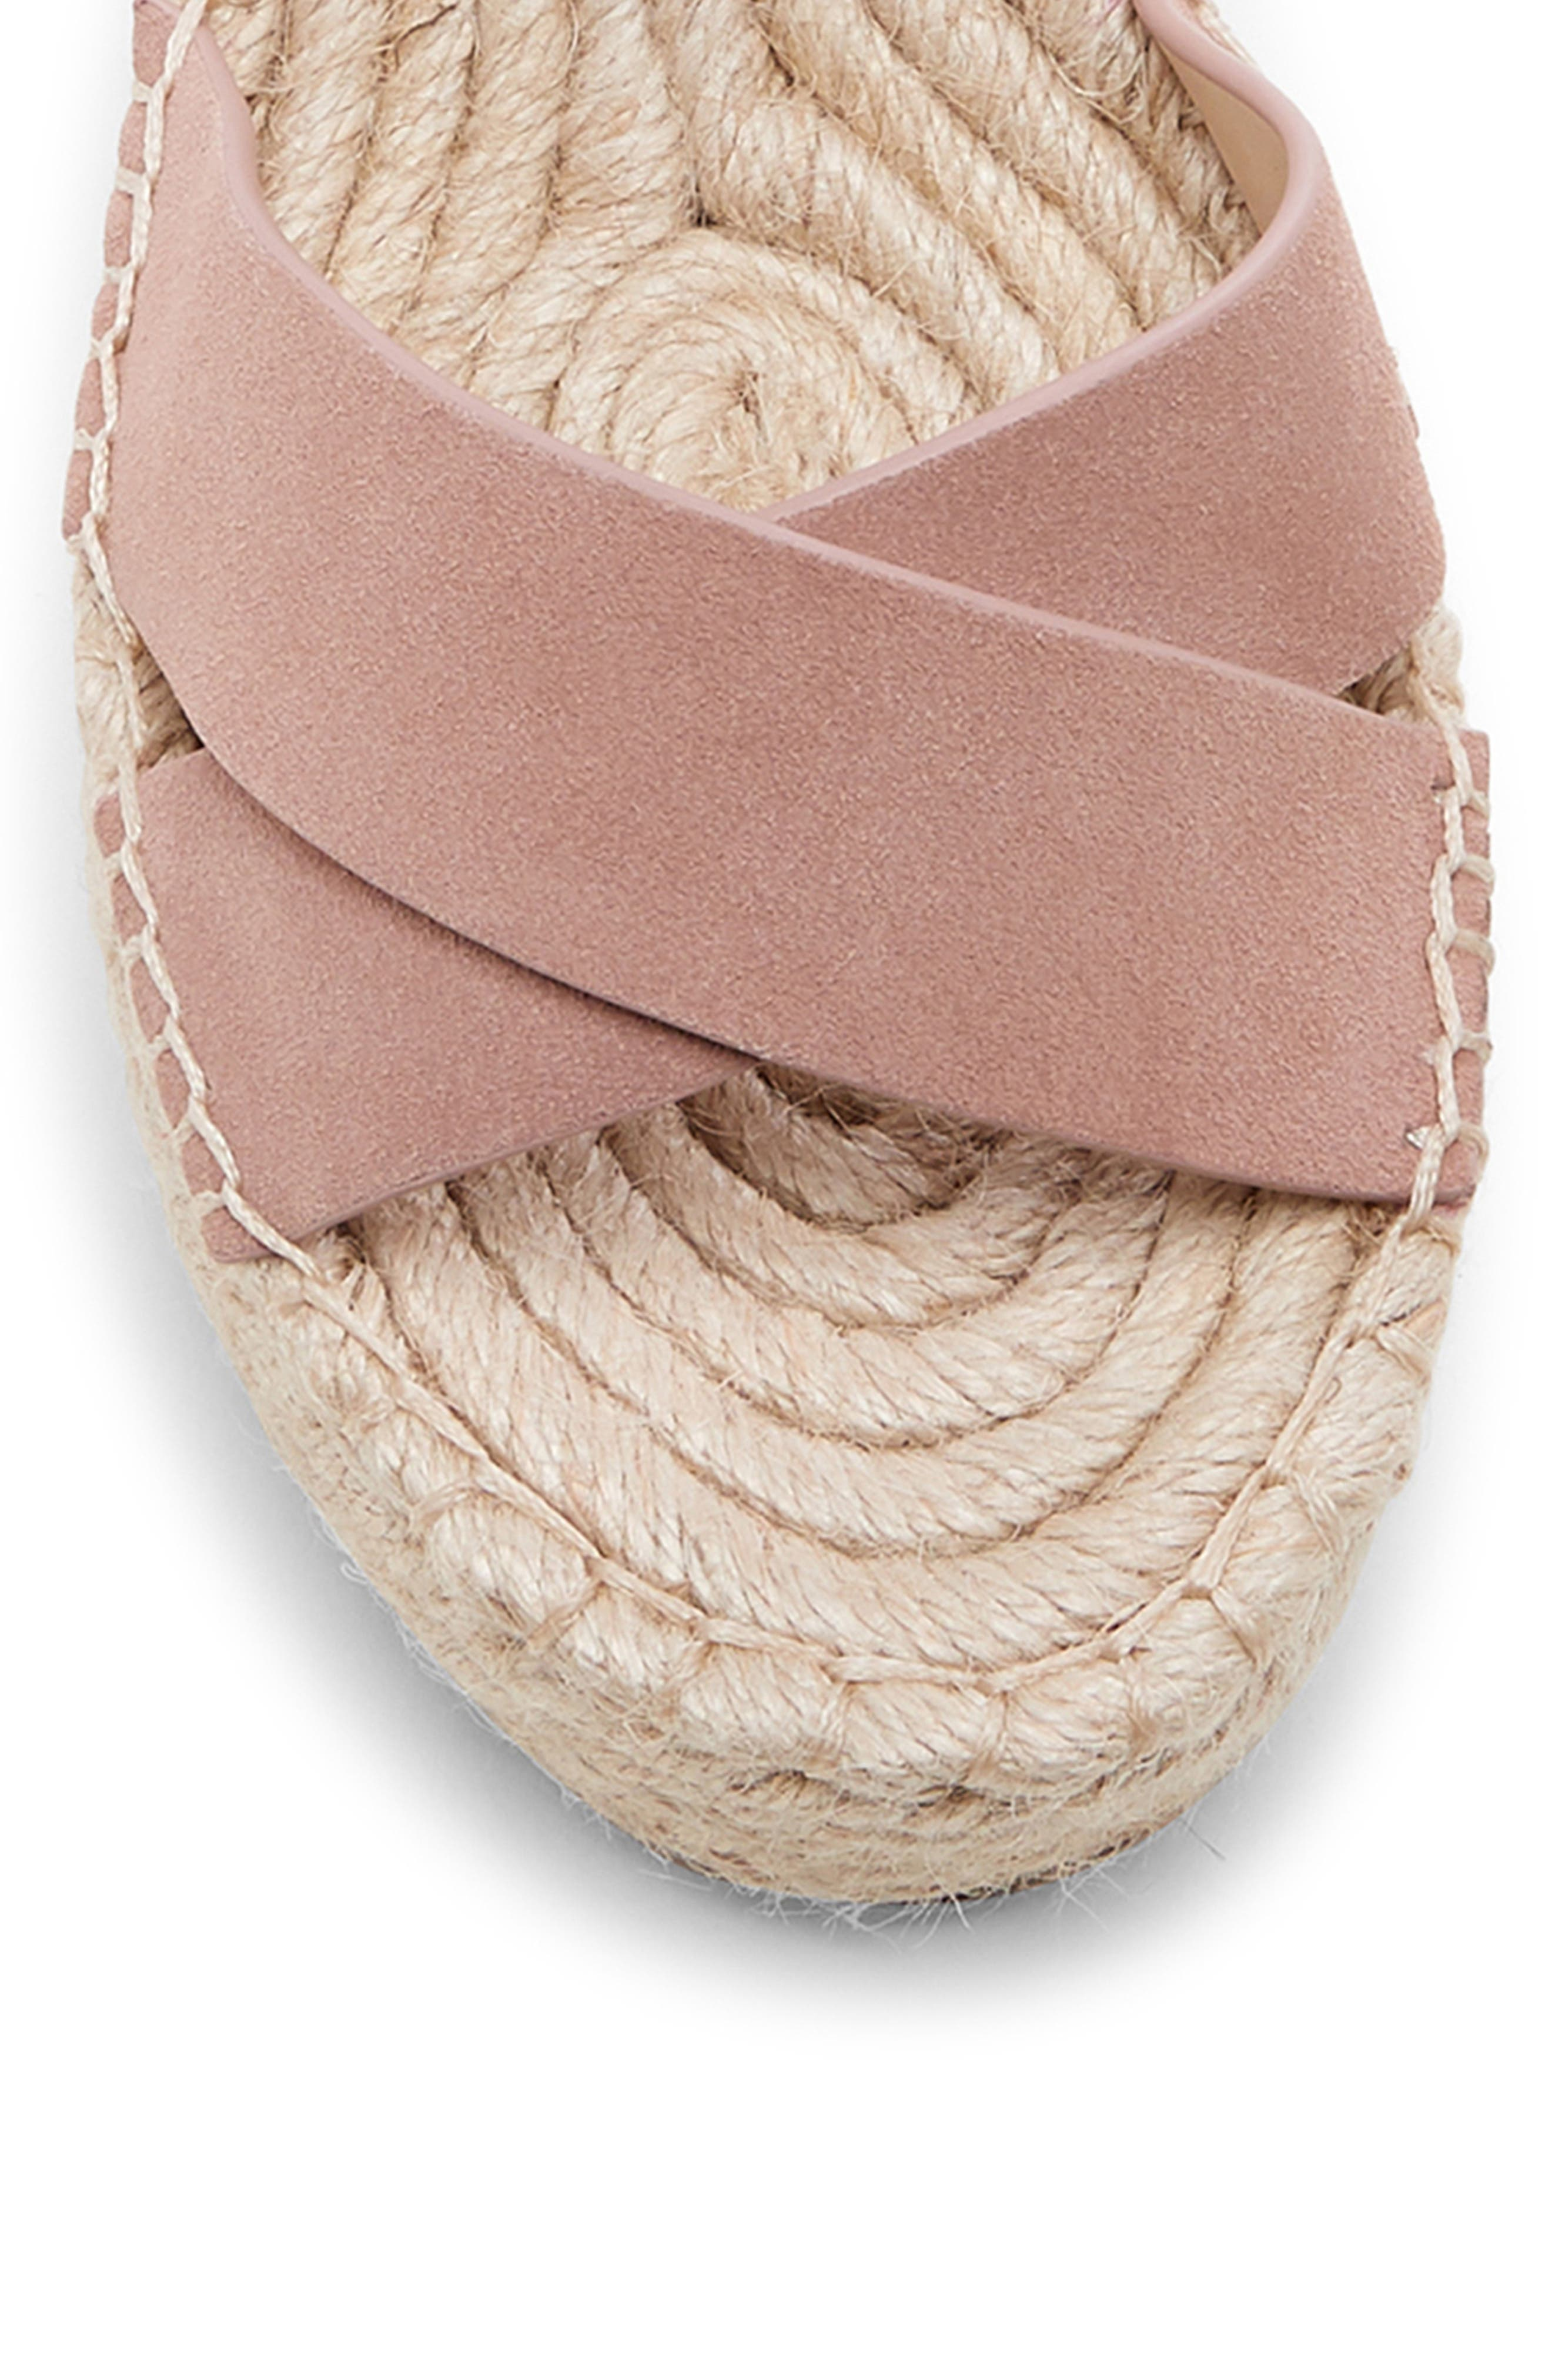 SOLE SOCIETY, Audrina Platform Espadrille Sandal, Alternate thumbnail 8, color, DUSTY ROSE SUEDE